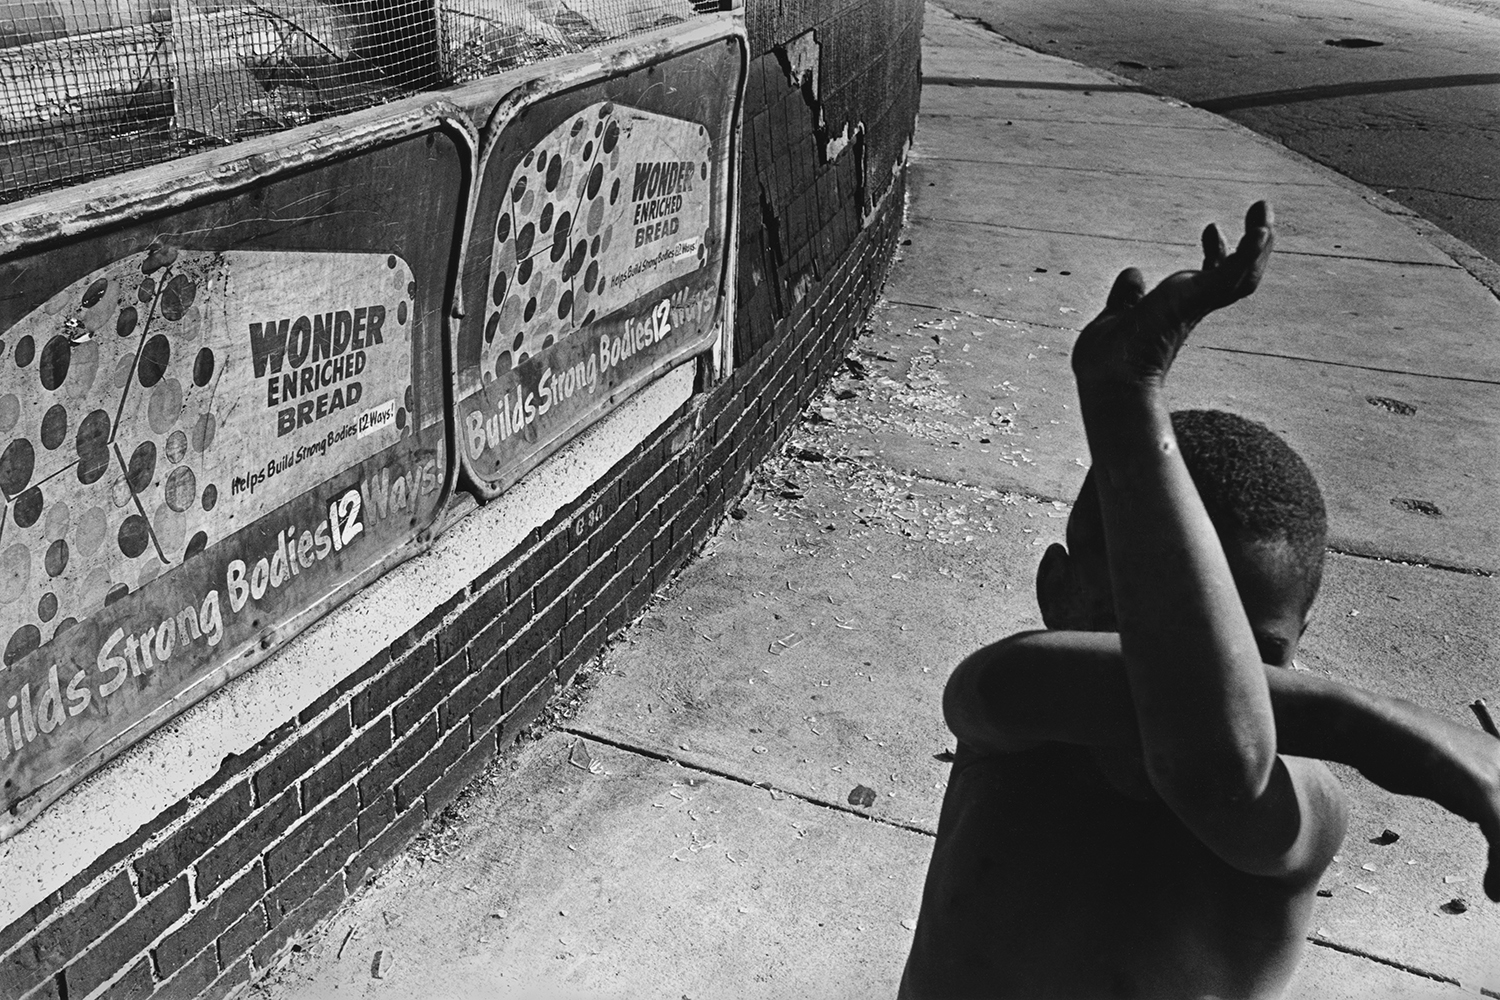 Wonder Bread  Dorchester, MA.  1975